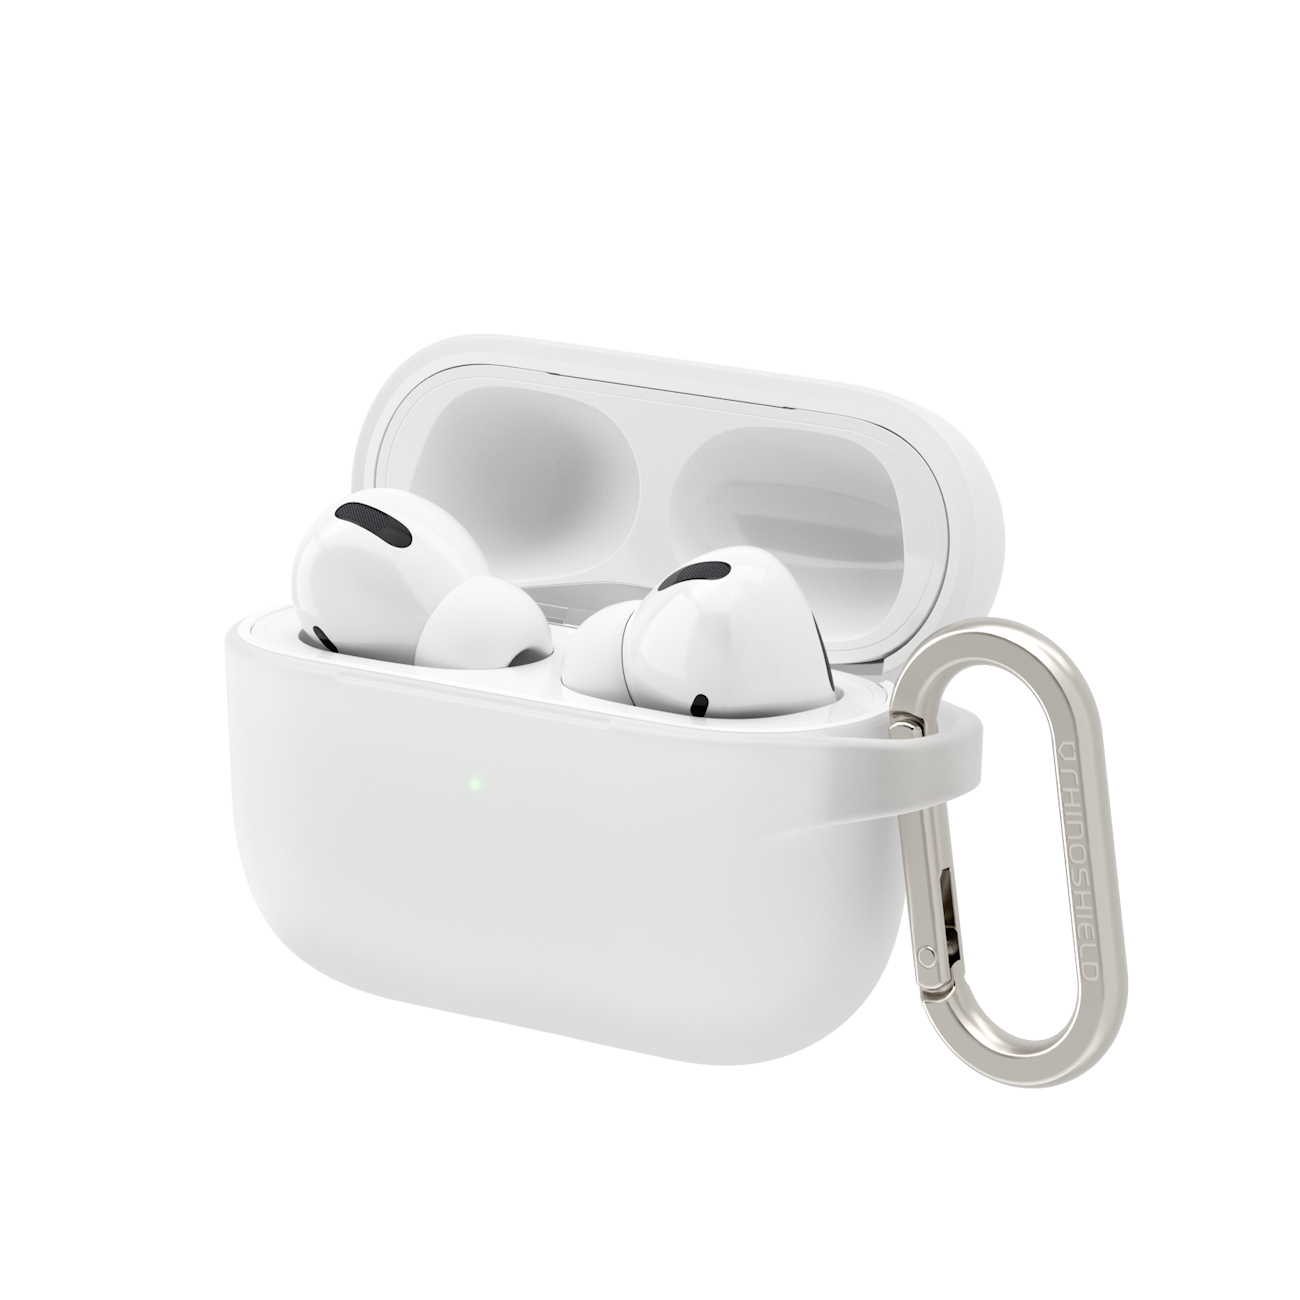 RhinoShield Impact Resistant Case For AirPods Pro - Alpine White